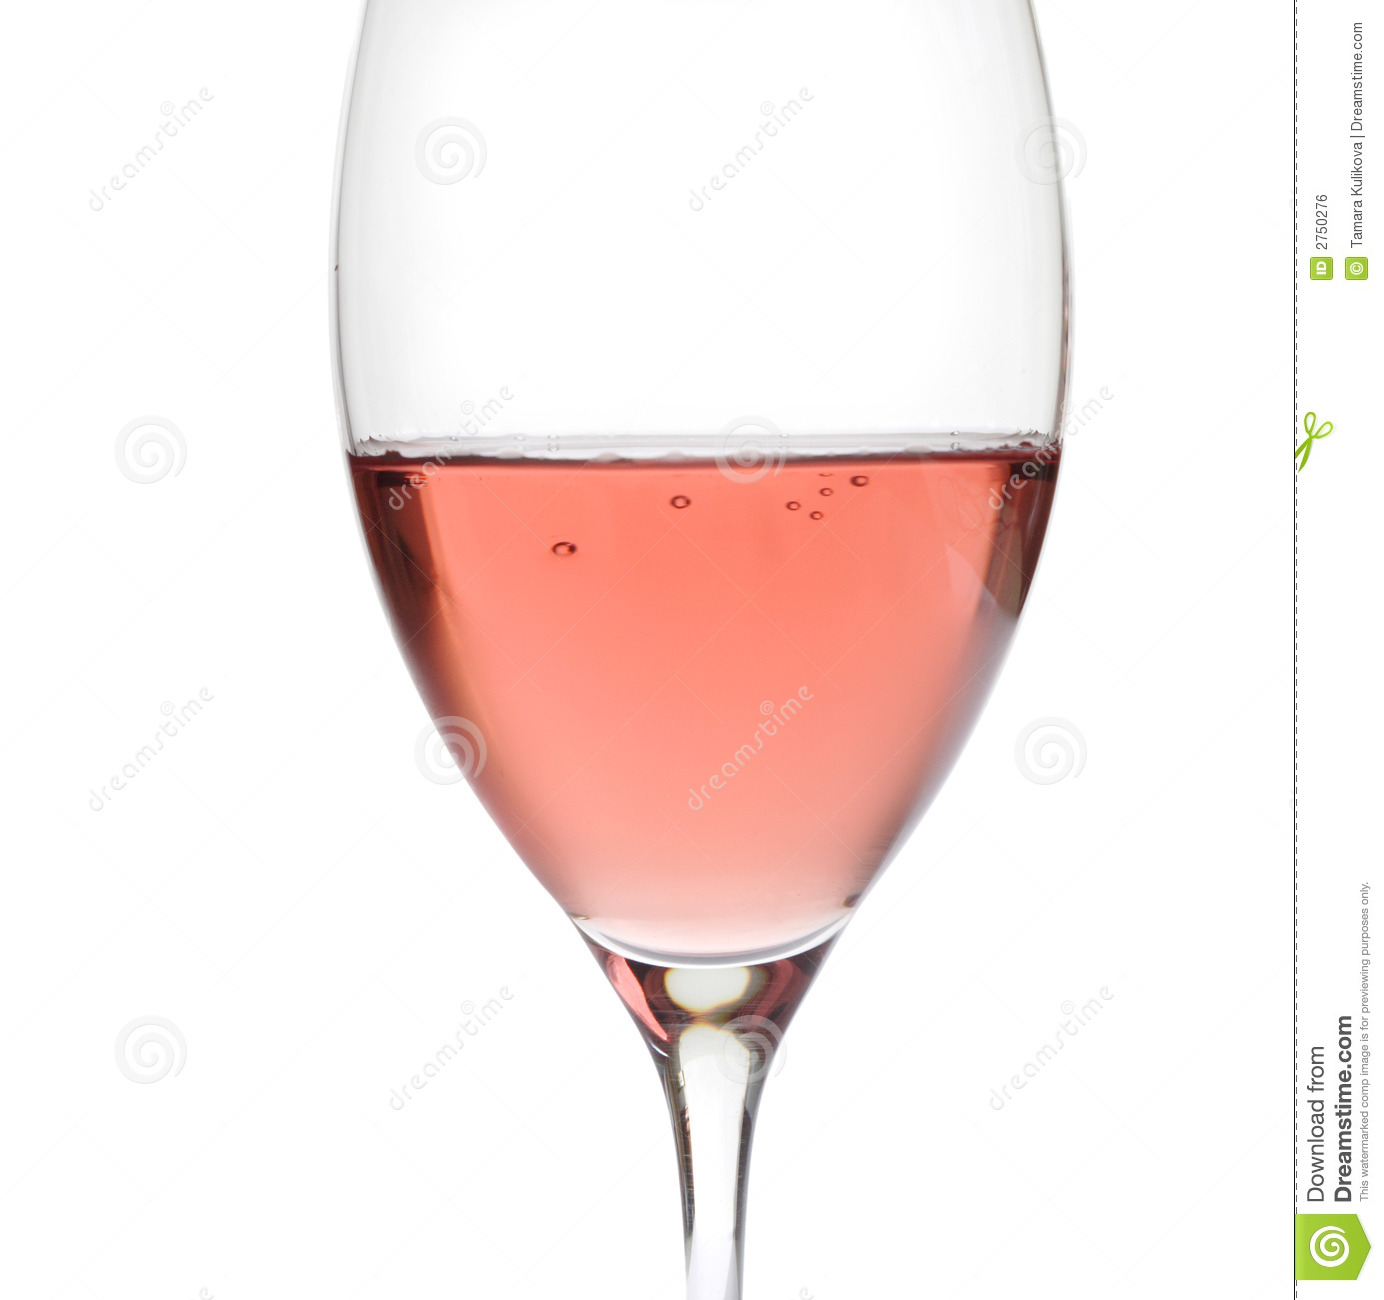 Rose Wine In Crystal Glass Royalty Free Stock Image - Image: 2750276